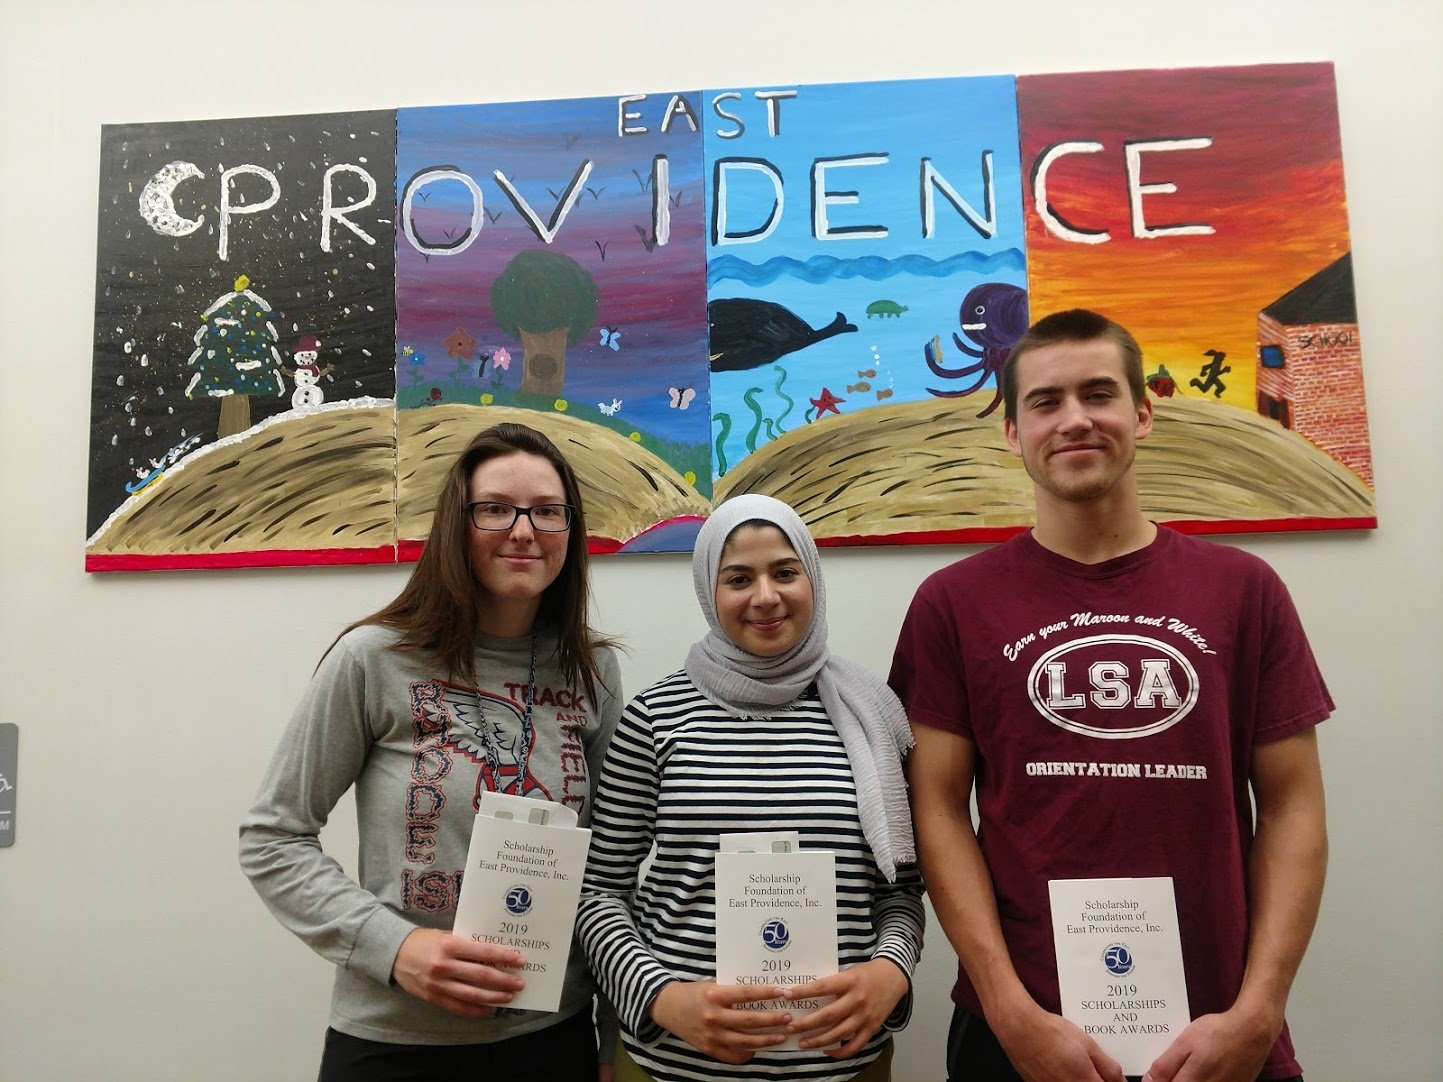 Recipients of the 50thyear awards from Scholarship Foundation of East Providence include Joss Duff, Zainab Almaarrawi and Kierstin Heck.